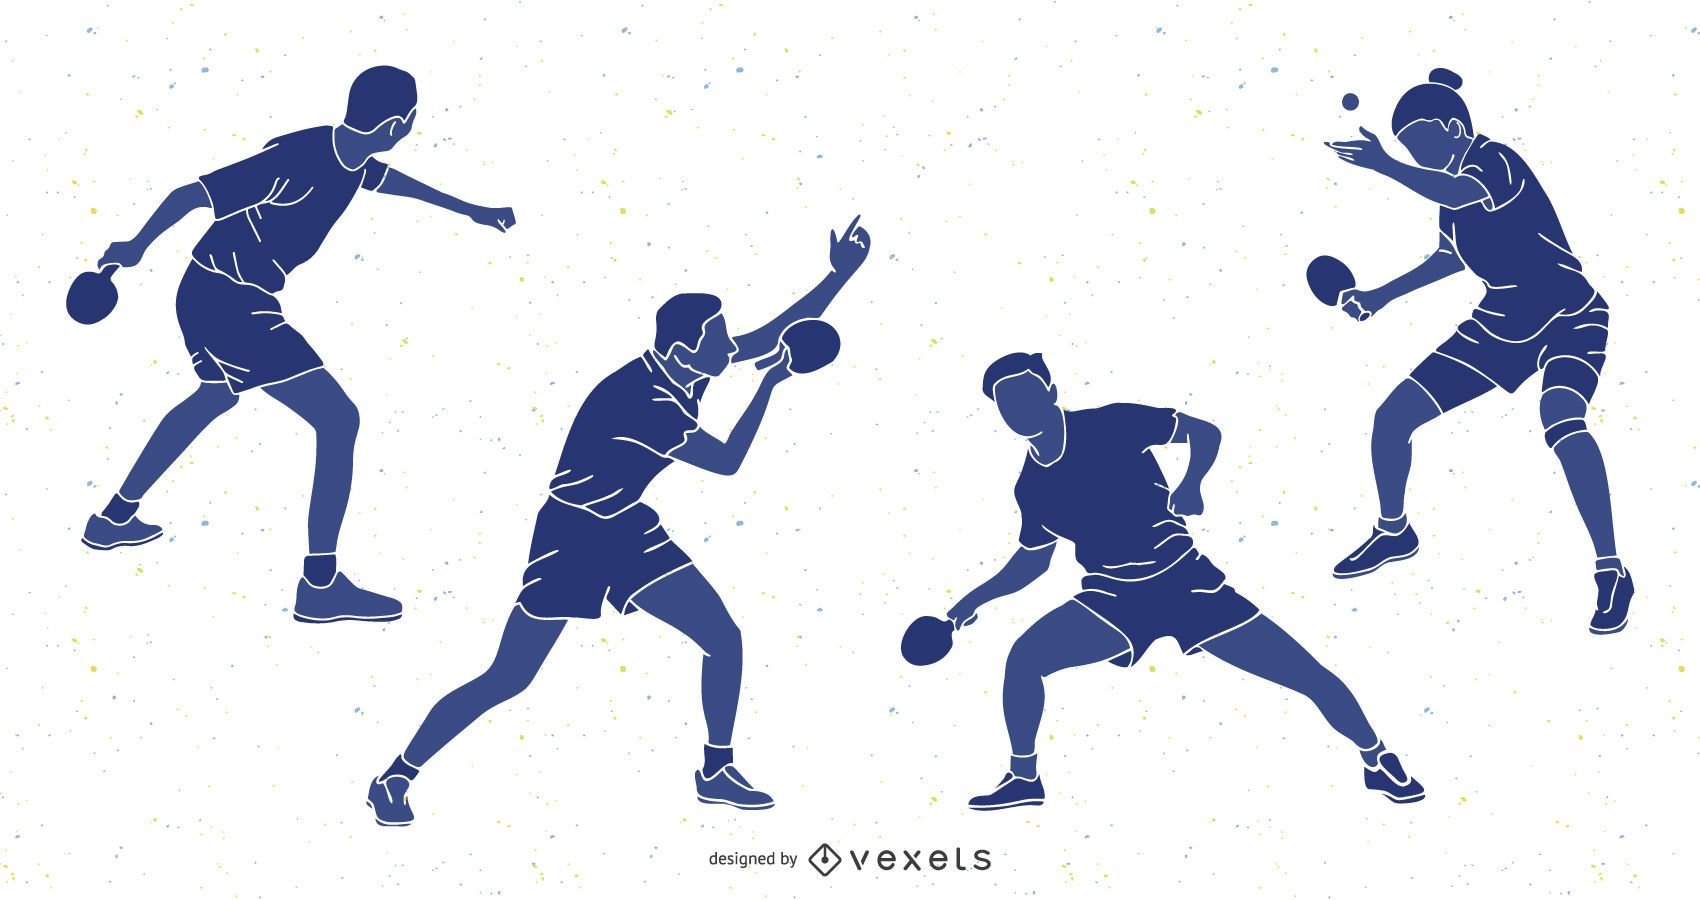 Table Tennis People Silhouette Pack